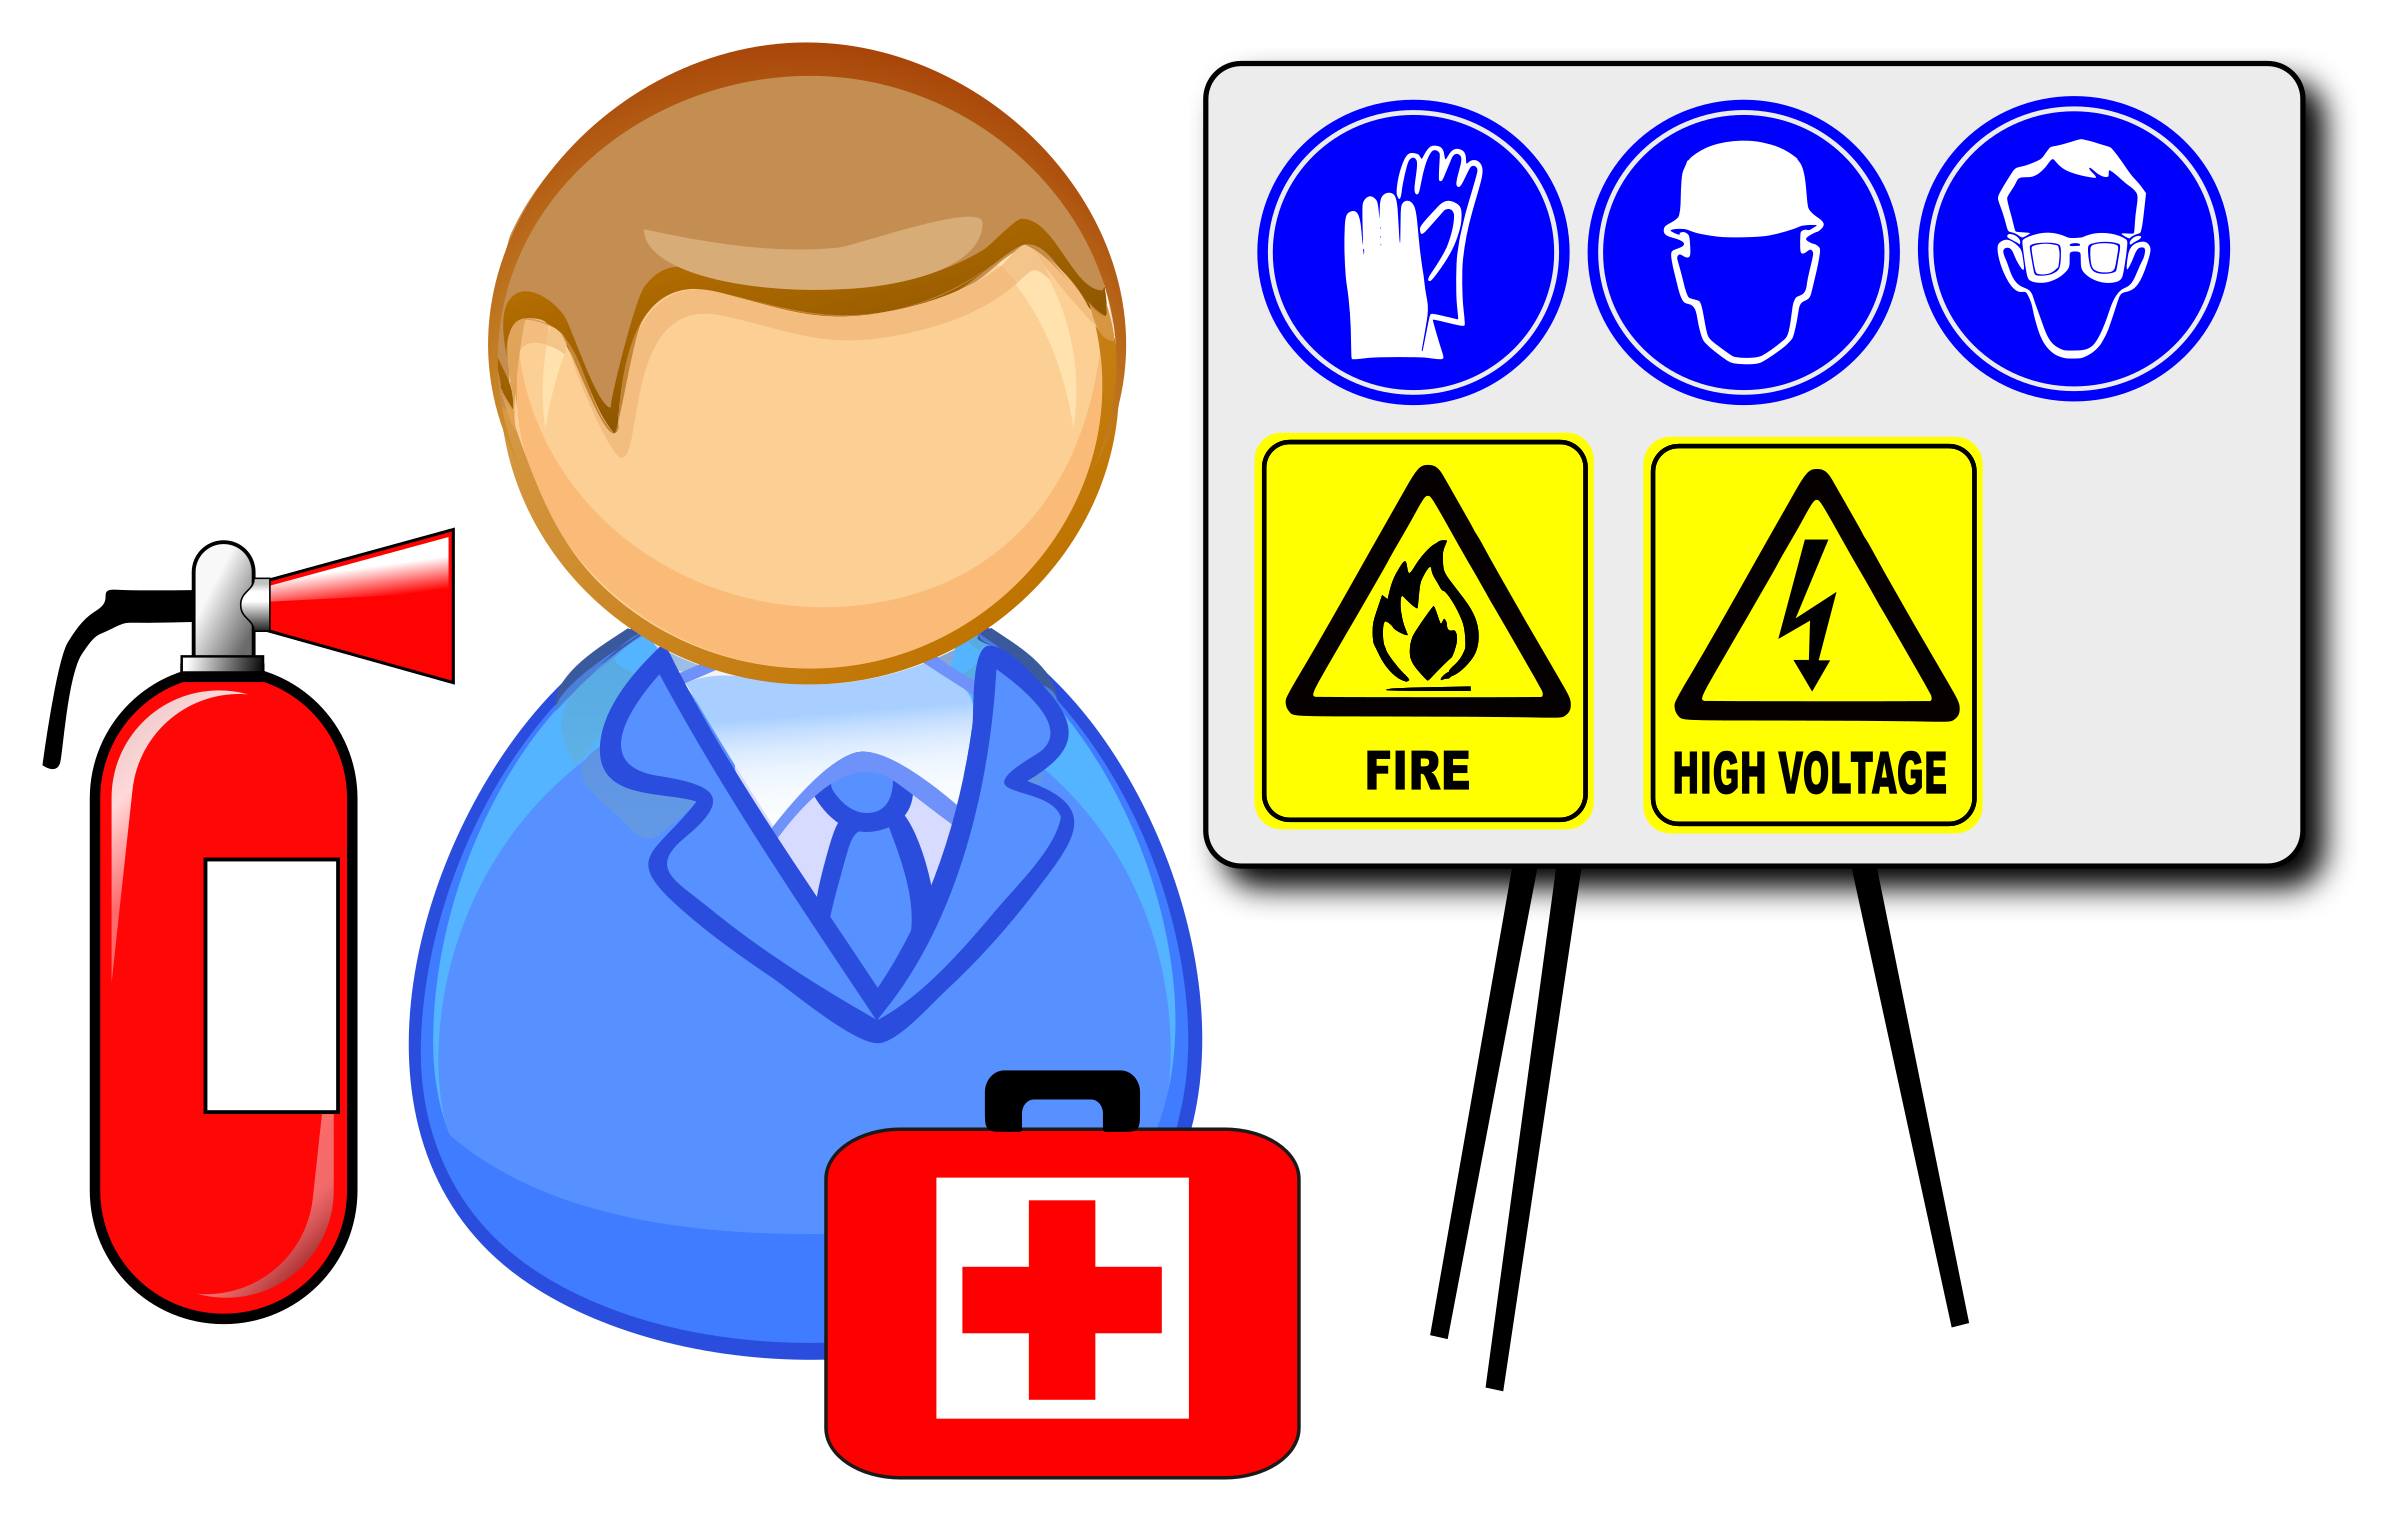 Occupational Health And Safety Png - Big Image (Png), Transparent background PNG HD thumbnail